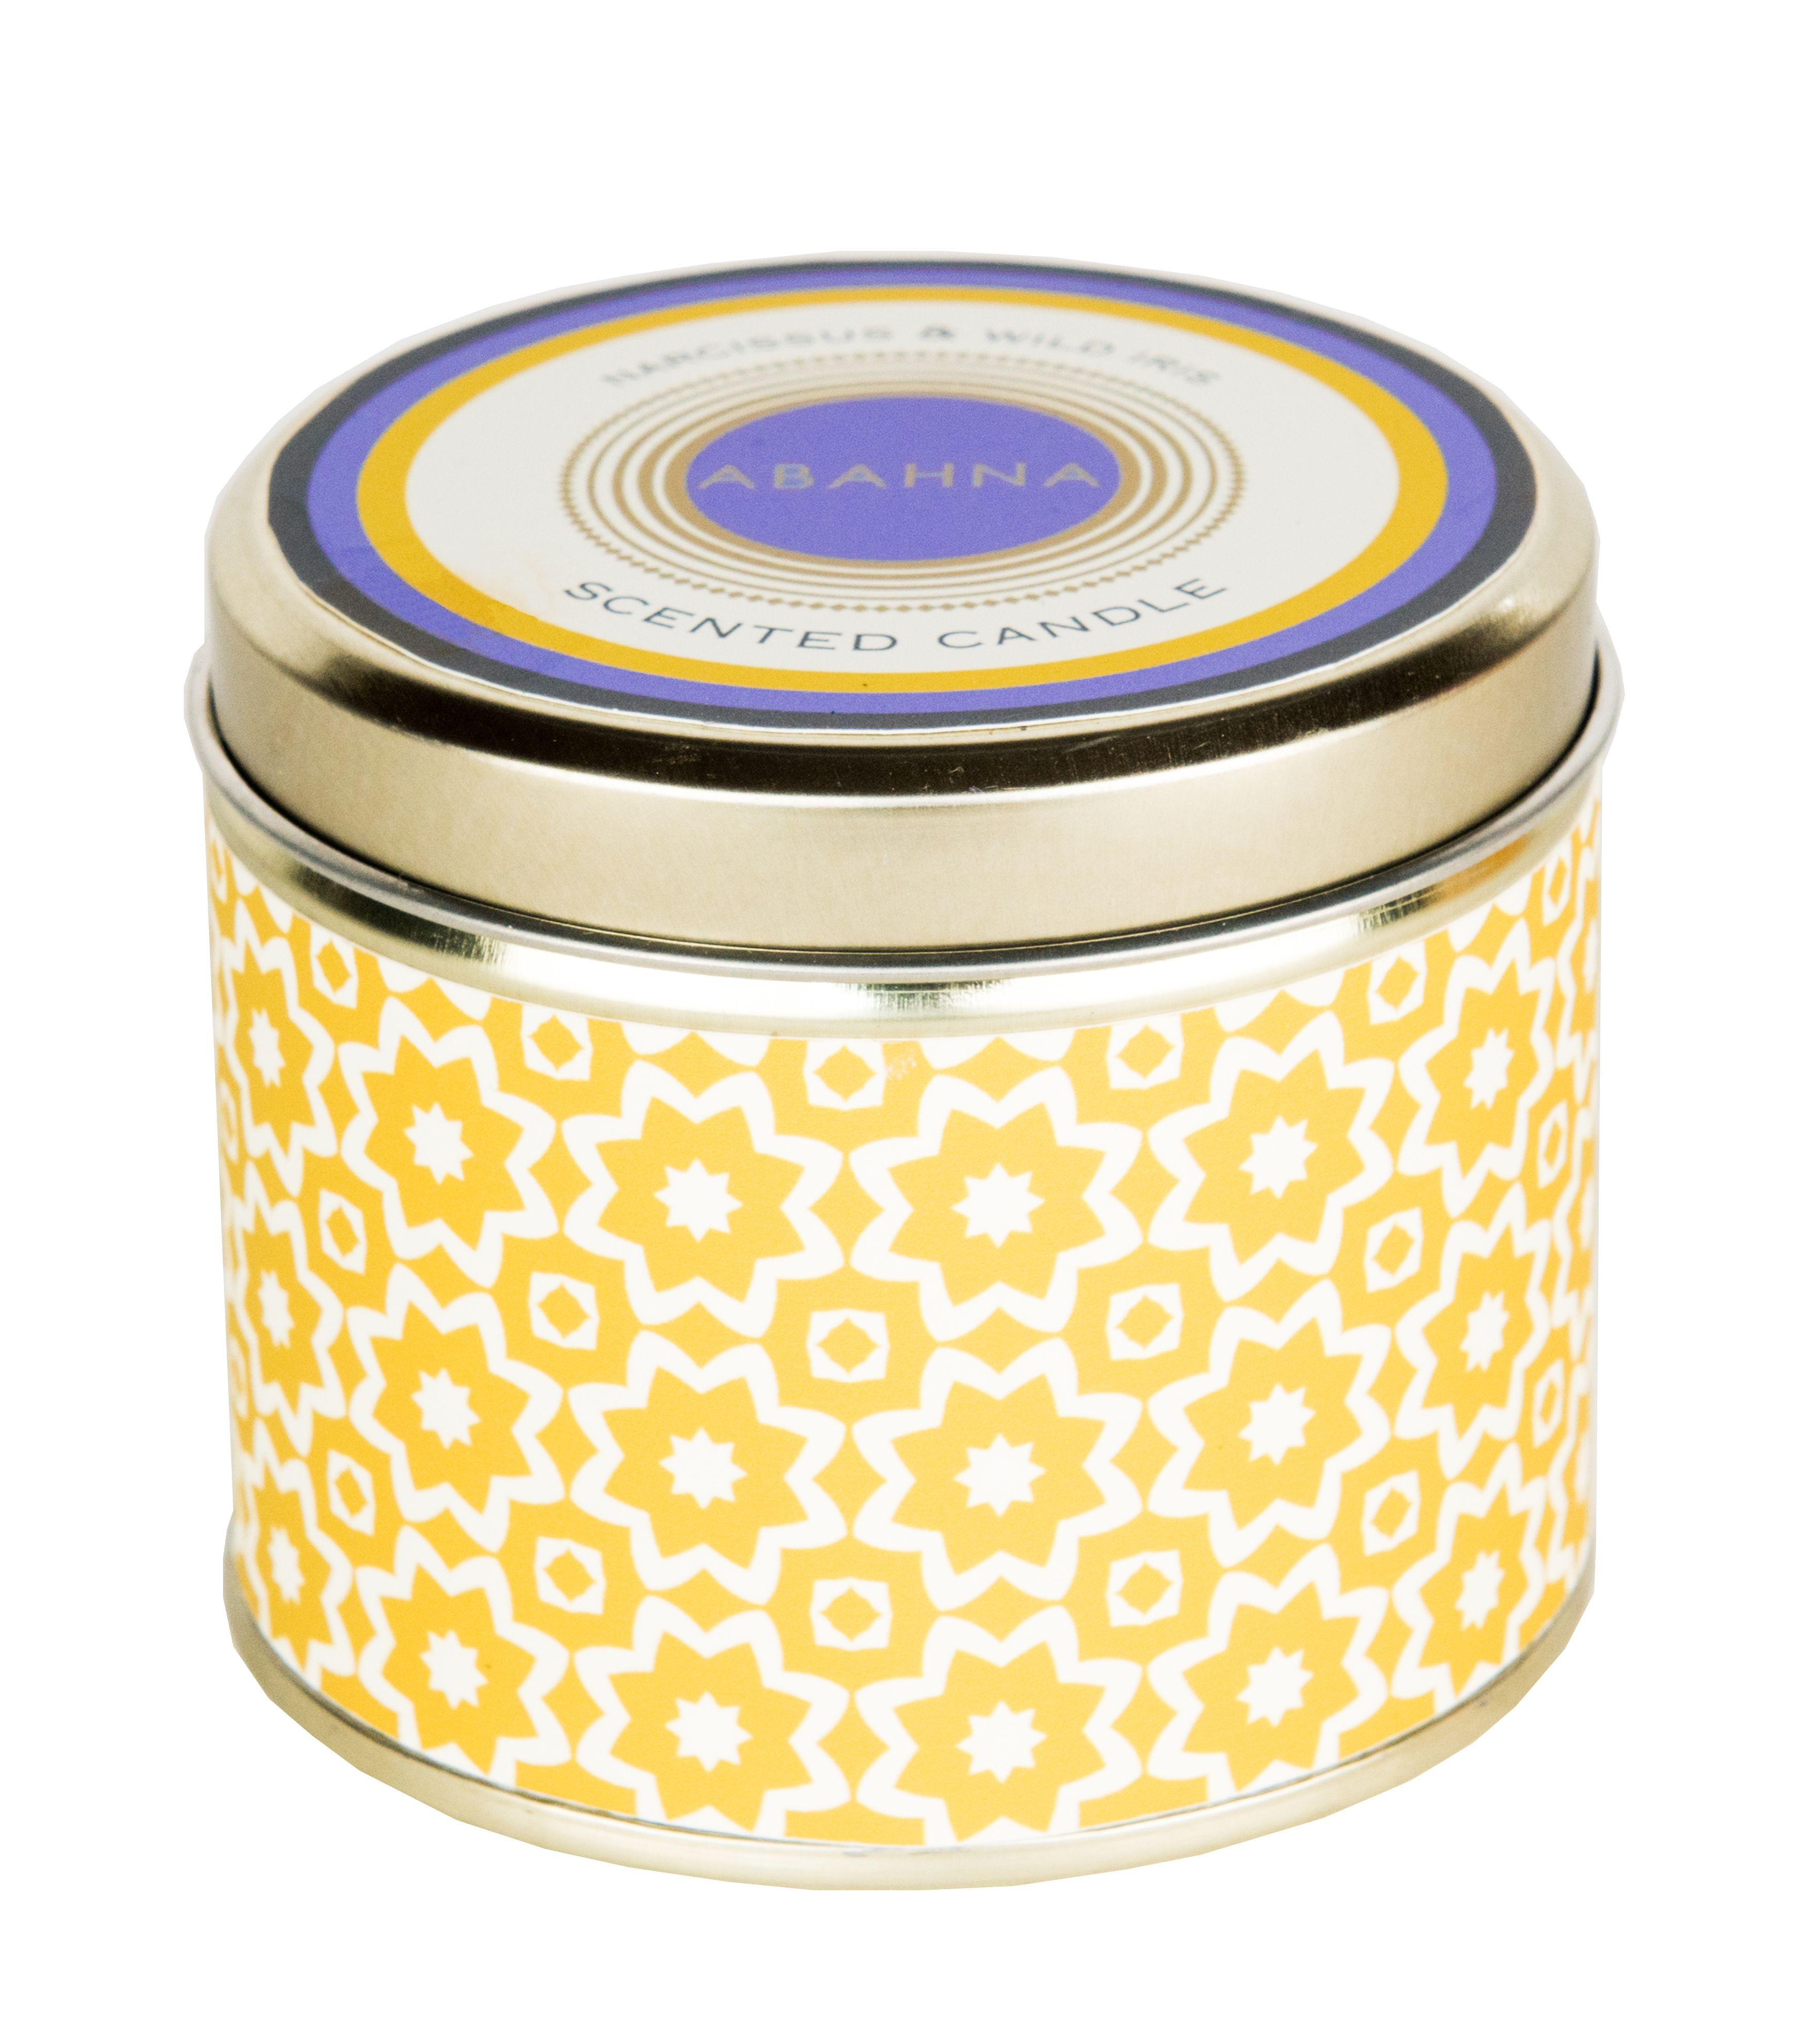 Image of Abahna Narcissus & Wild Iris Scented Candle Tin 160g